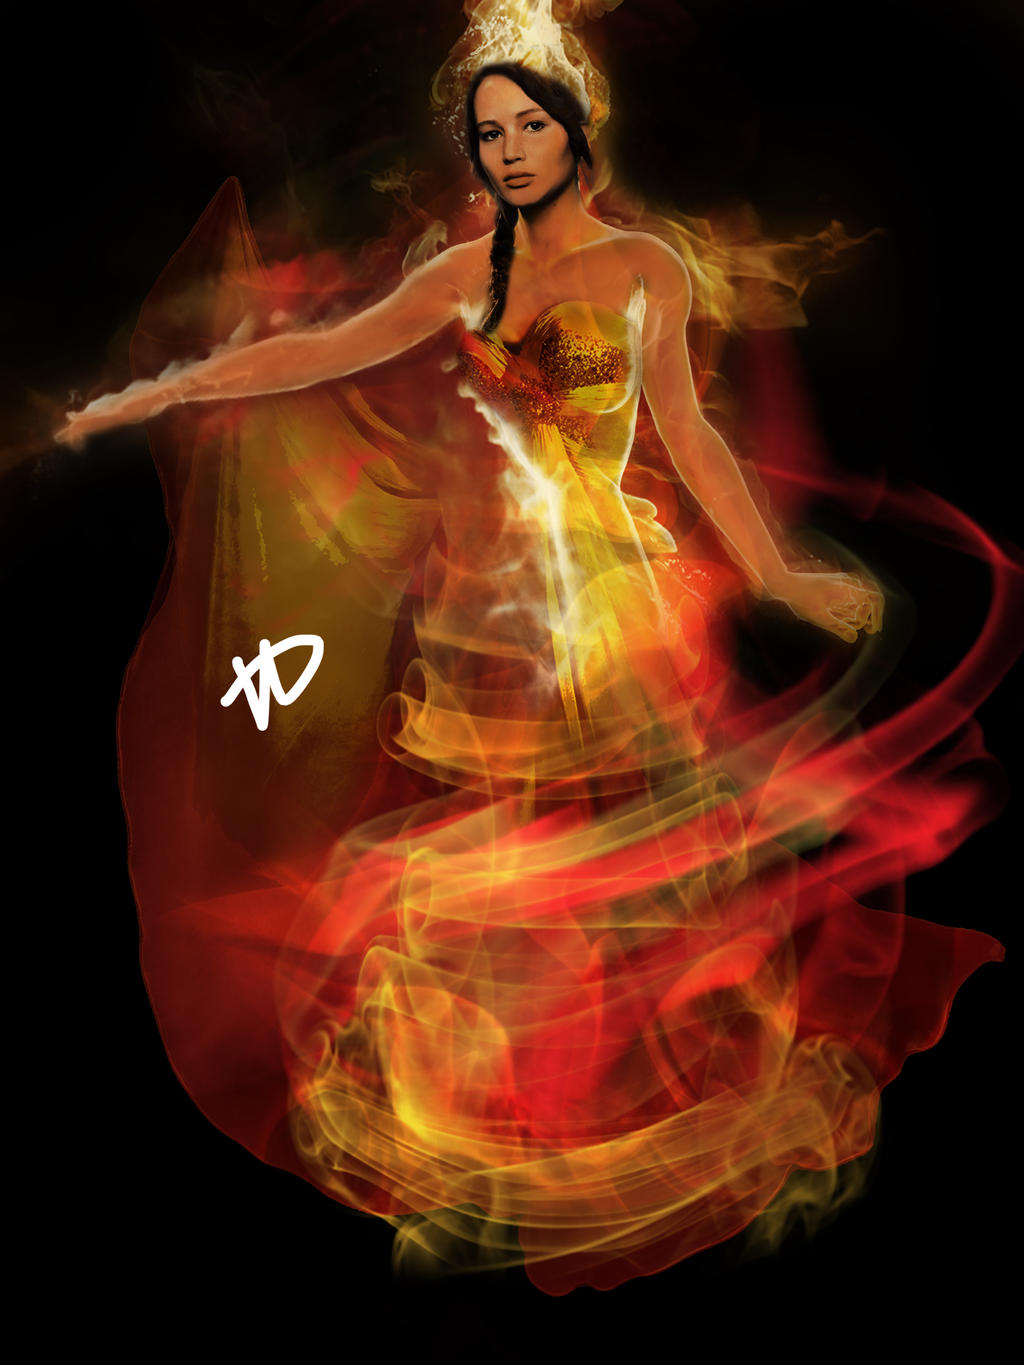 Katniss: The Girl On Fire by xskiesrbluex on DeviantArt